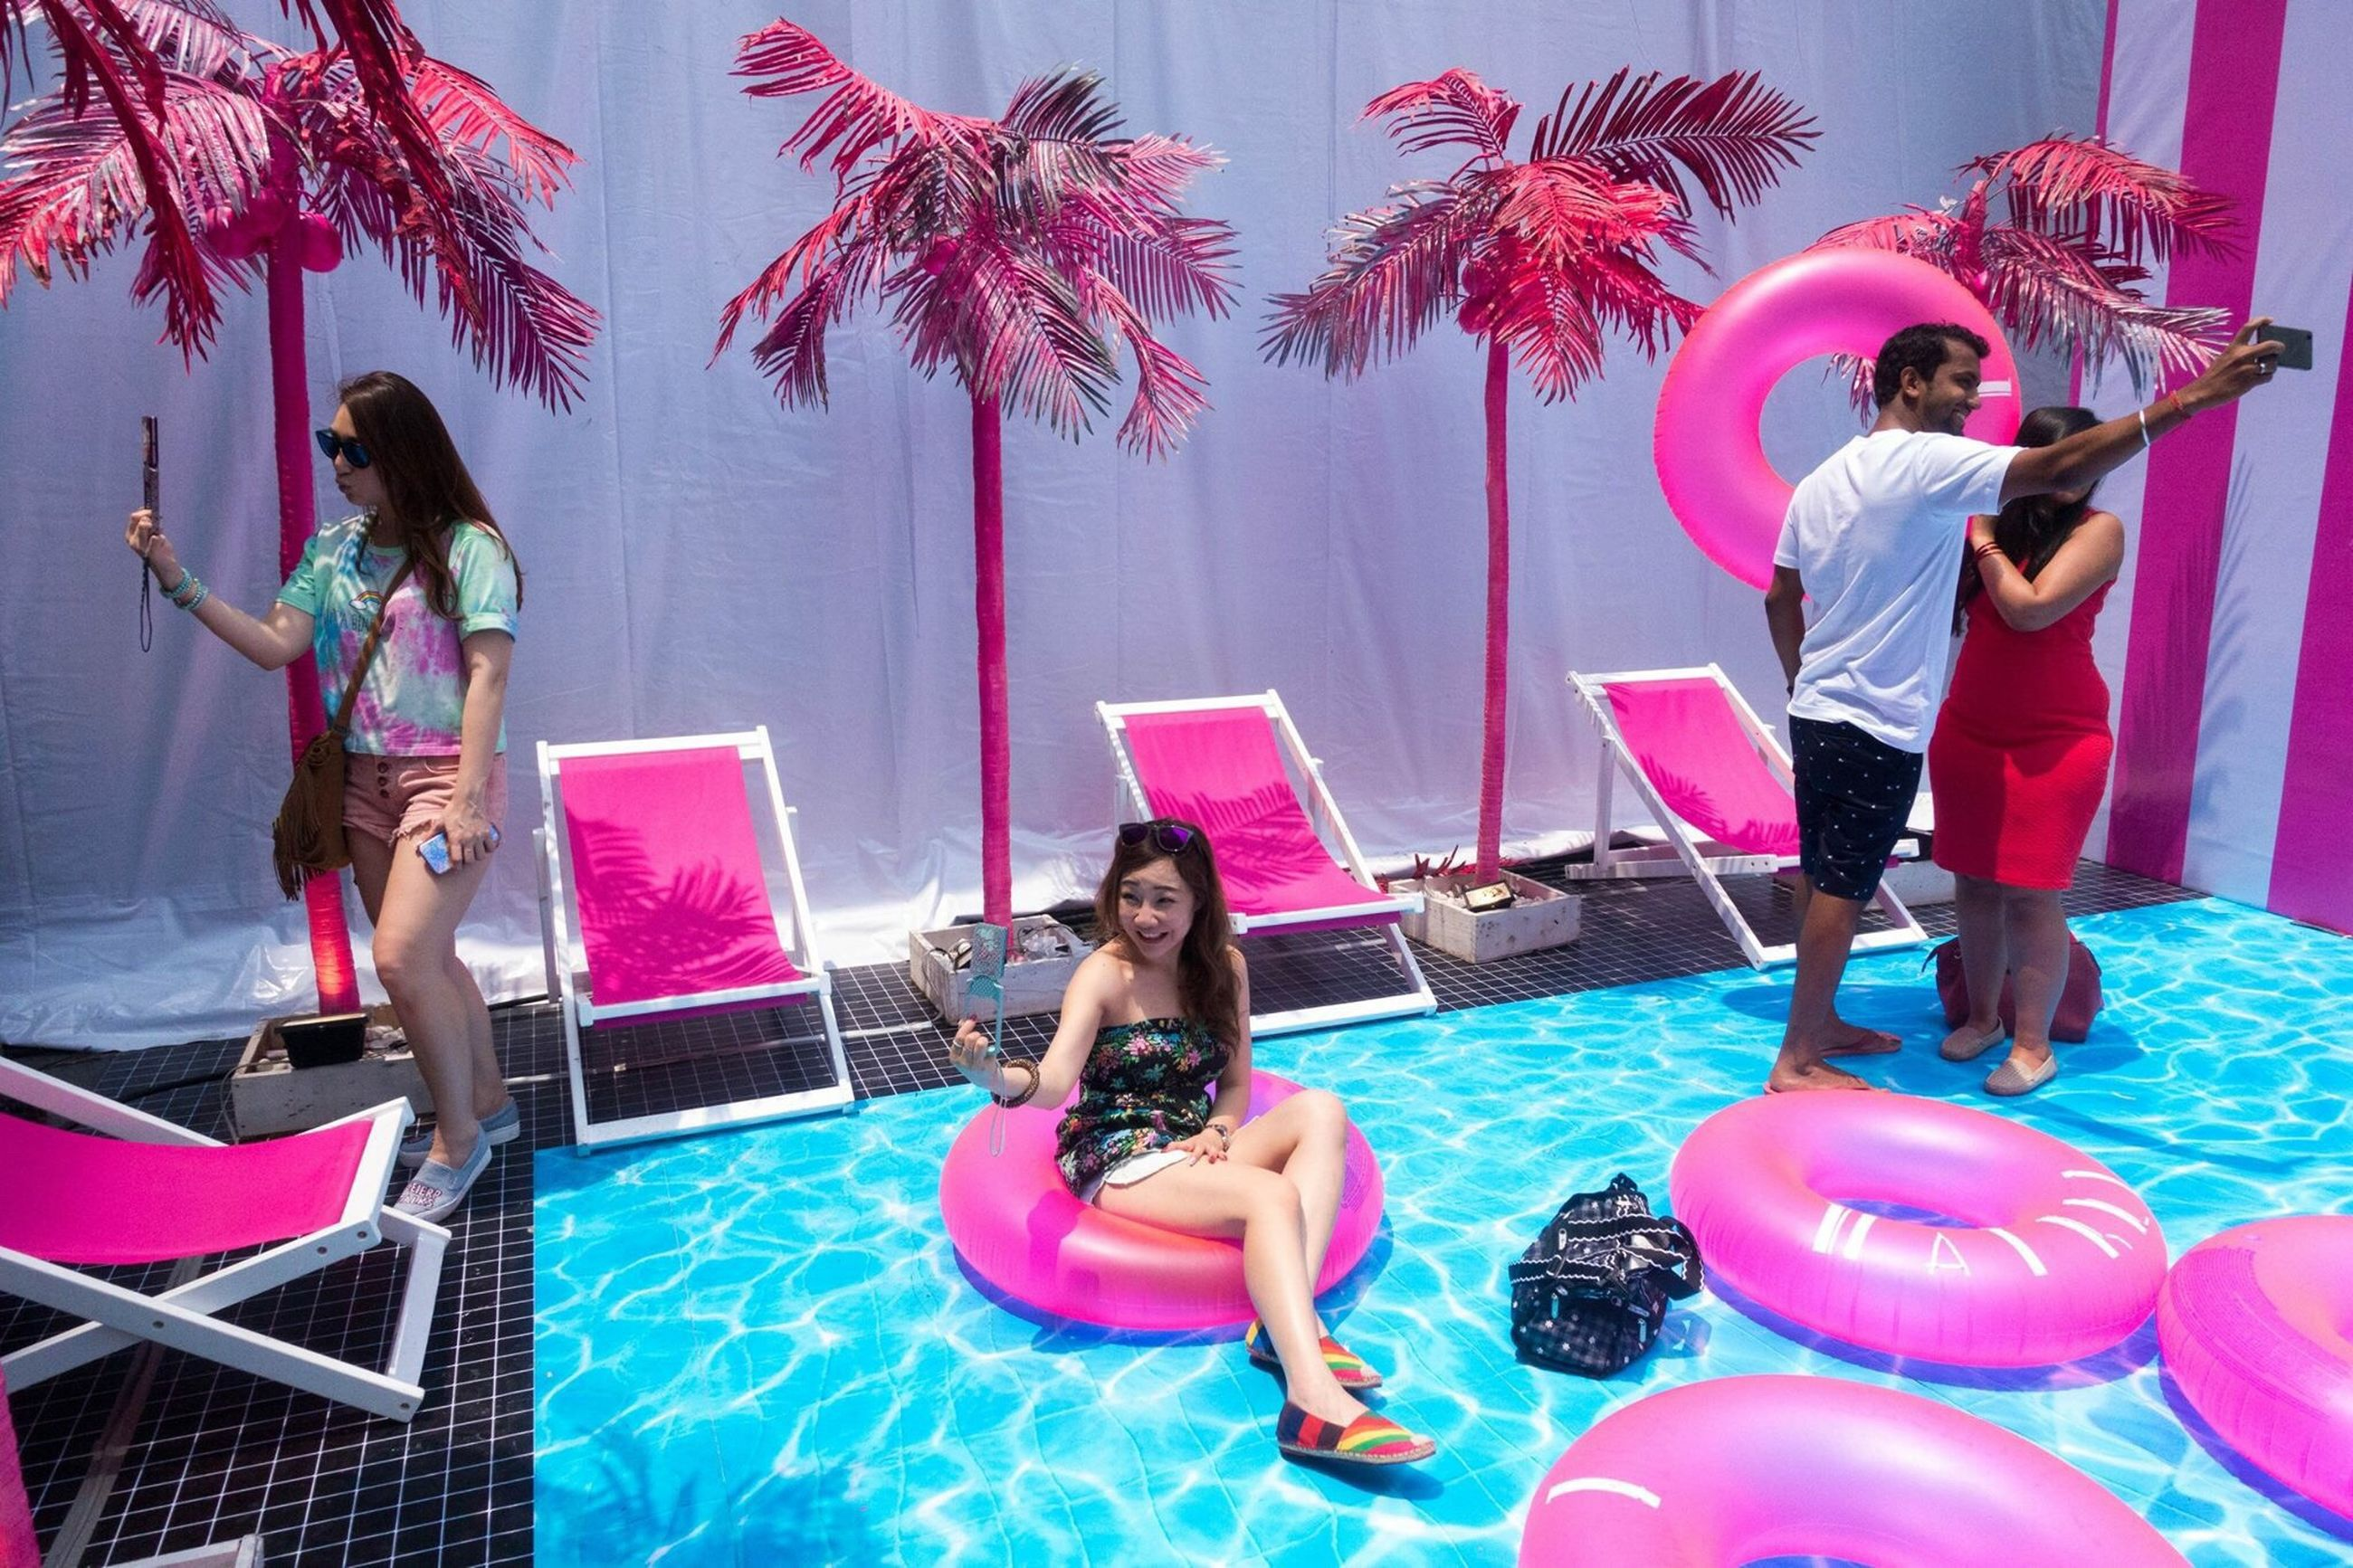 leisure activity, lifestyles, fun, enjoyment, childhood, person, full length, elementary age, happiness, casual clothing, girls, boys, playing, sitting, water, young adult, smiling, arts culture and entertainment